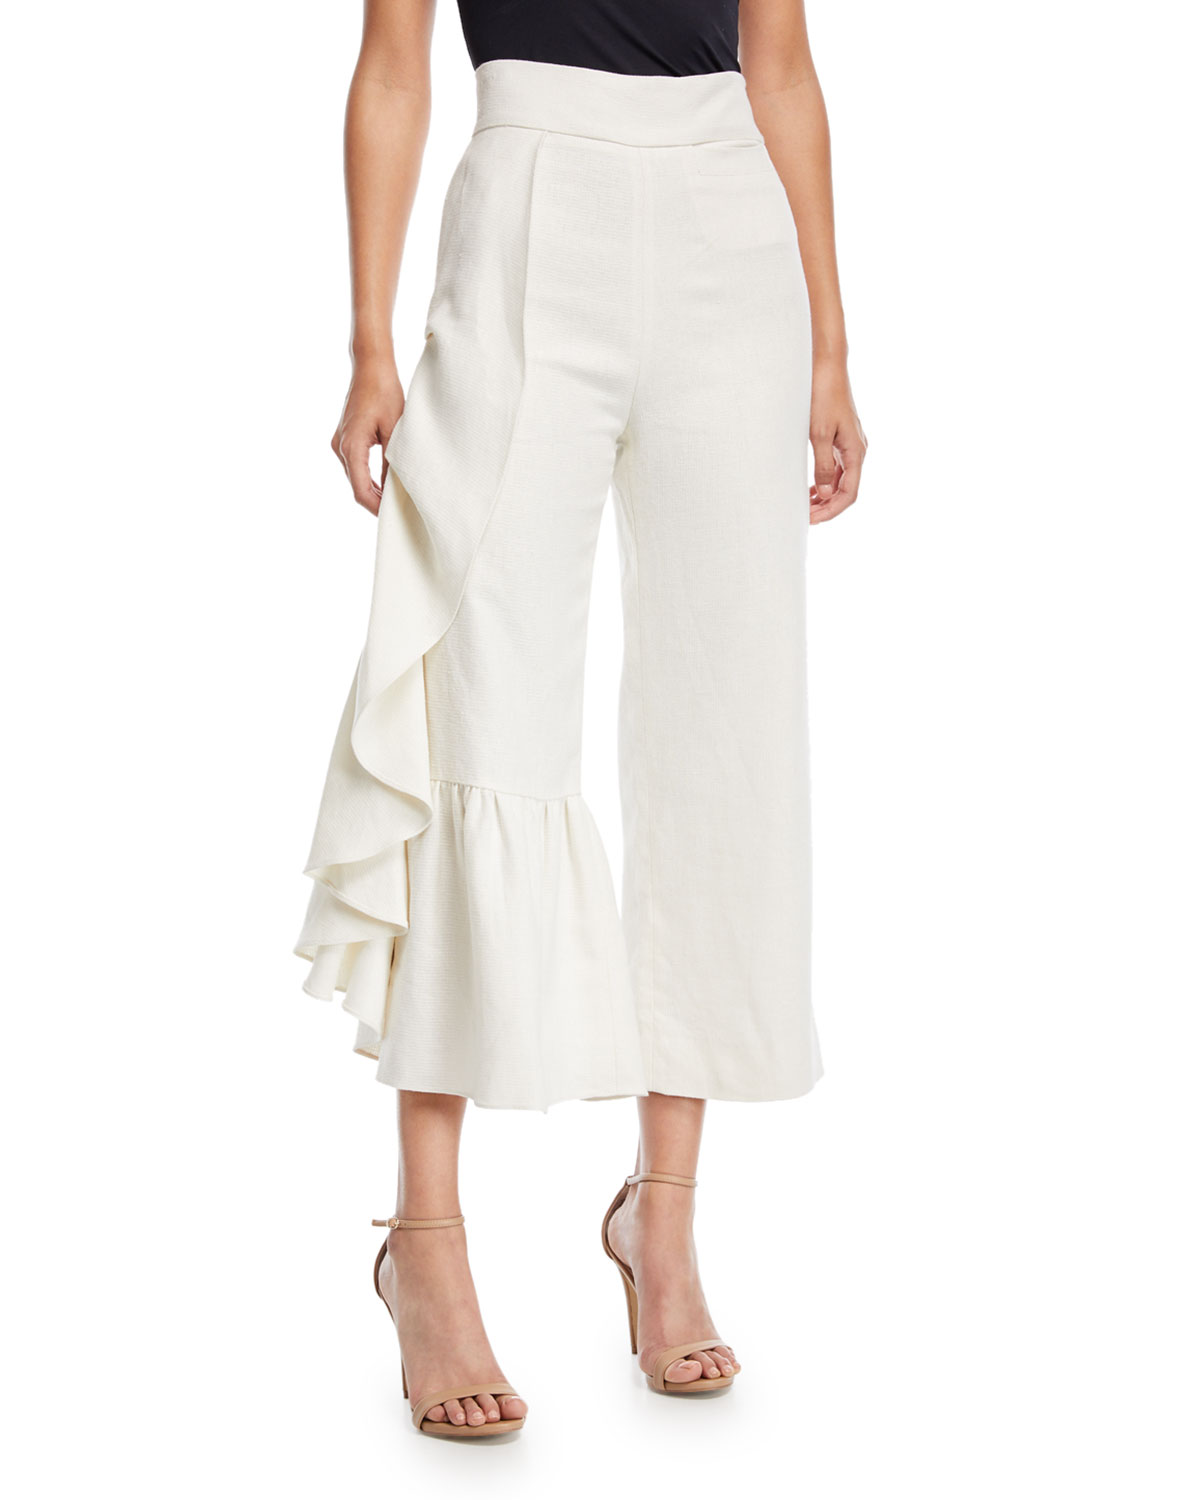 Alexis Lainey Wide Leg Linen Pants With Ruffled Frill